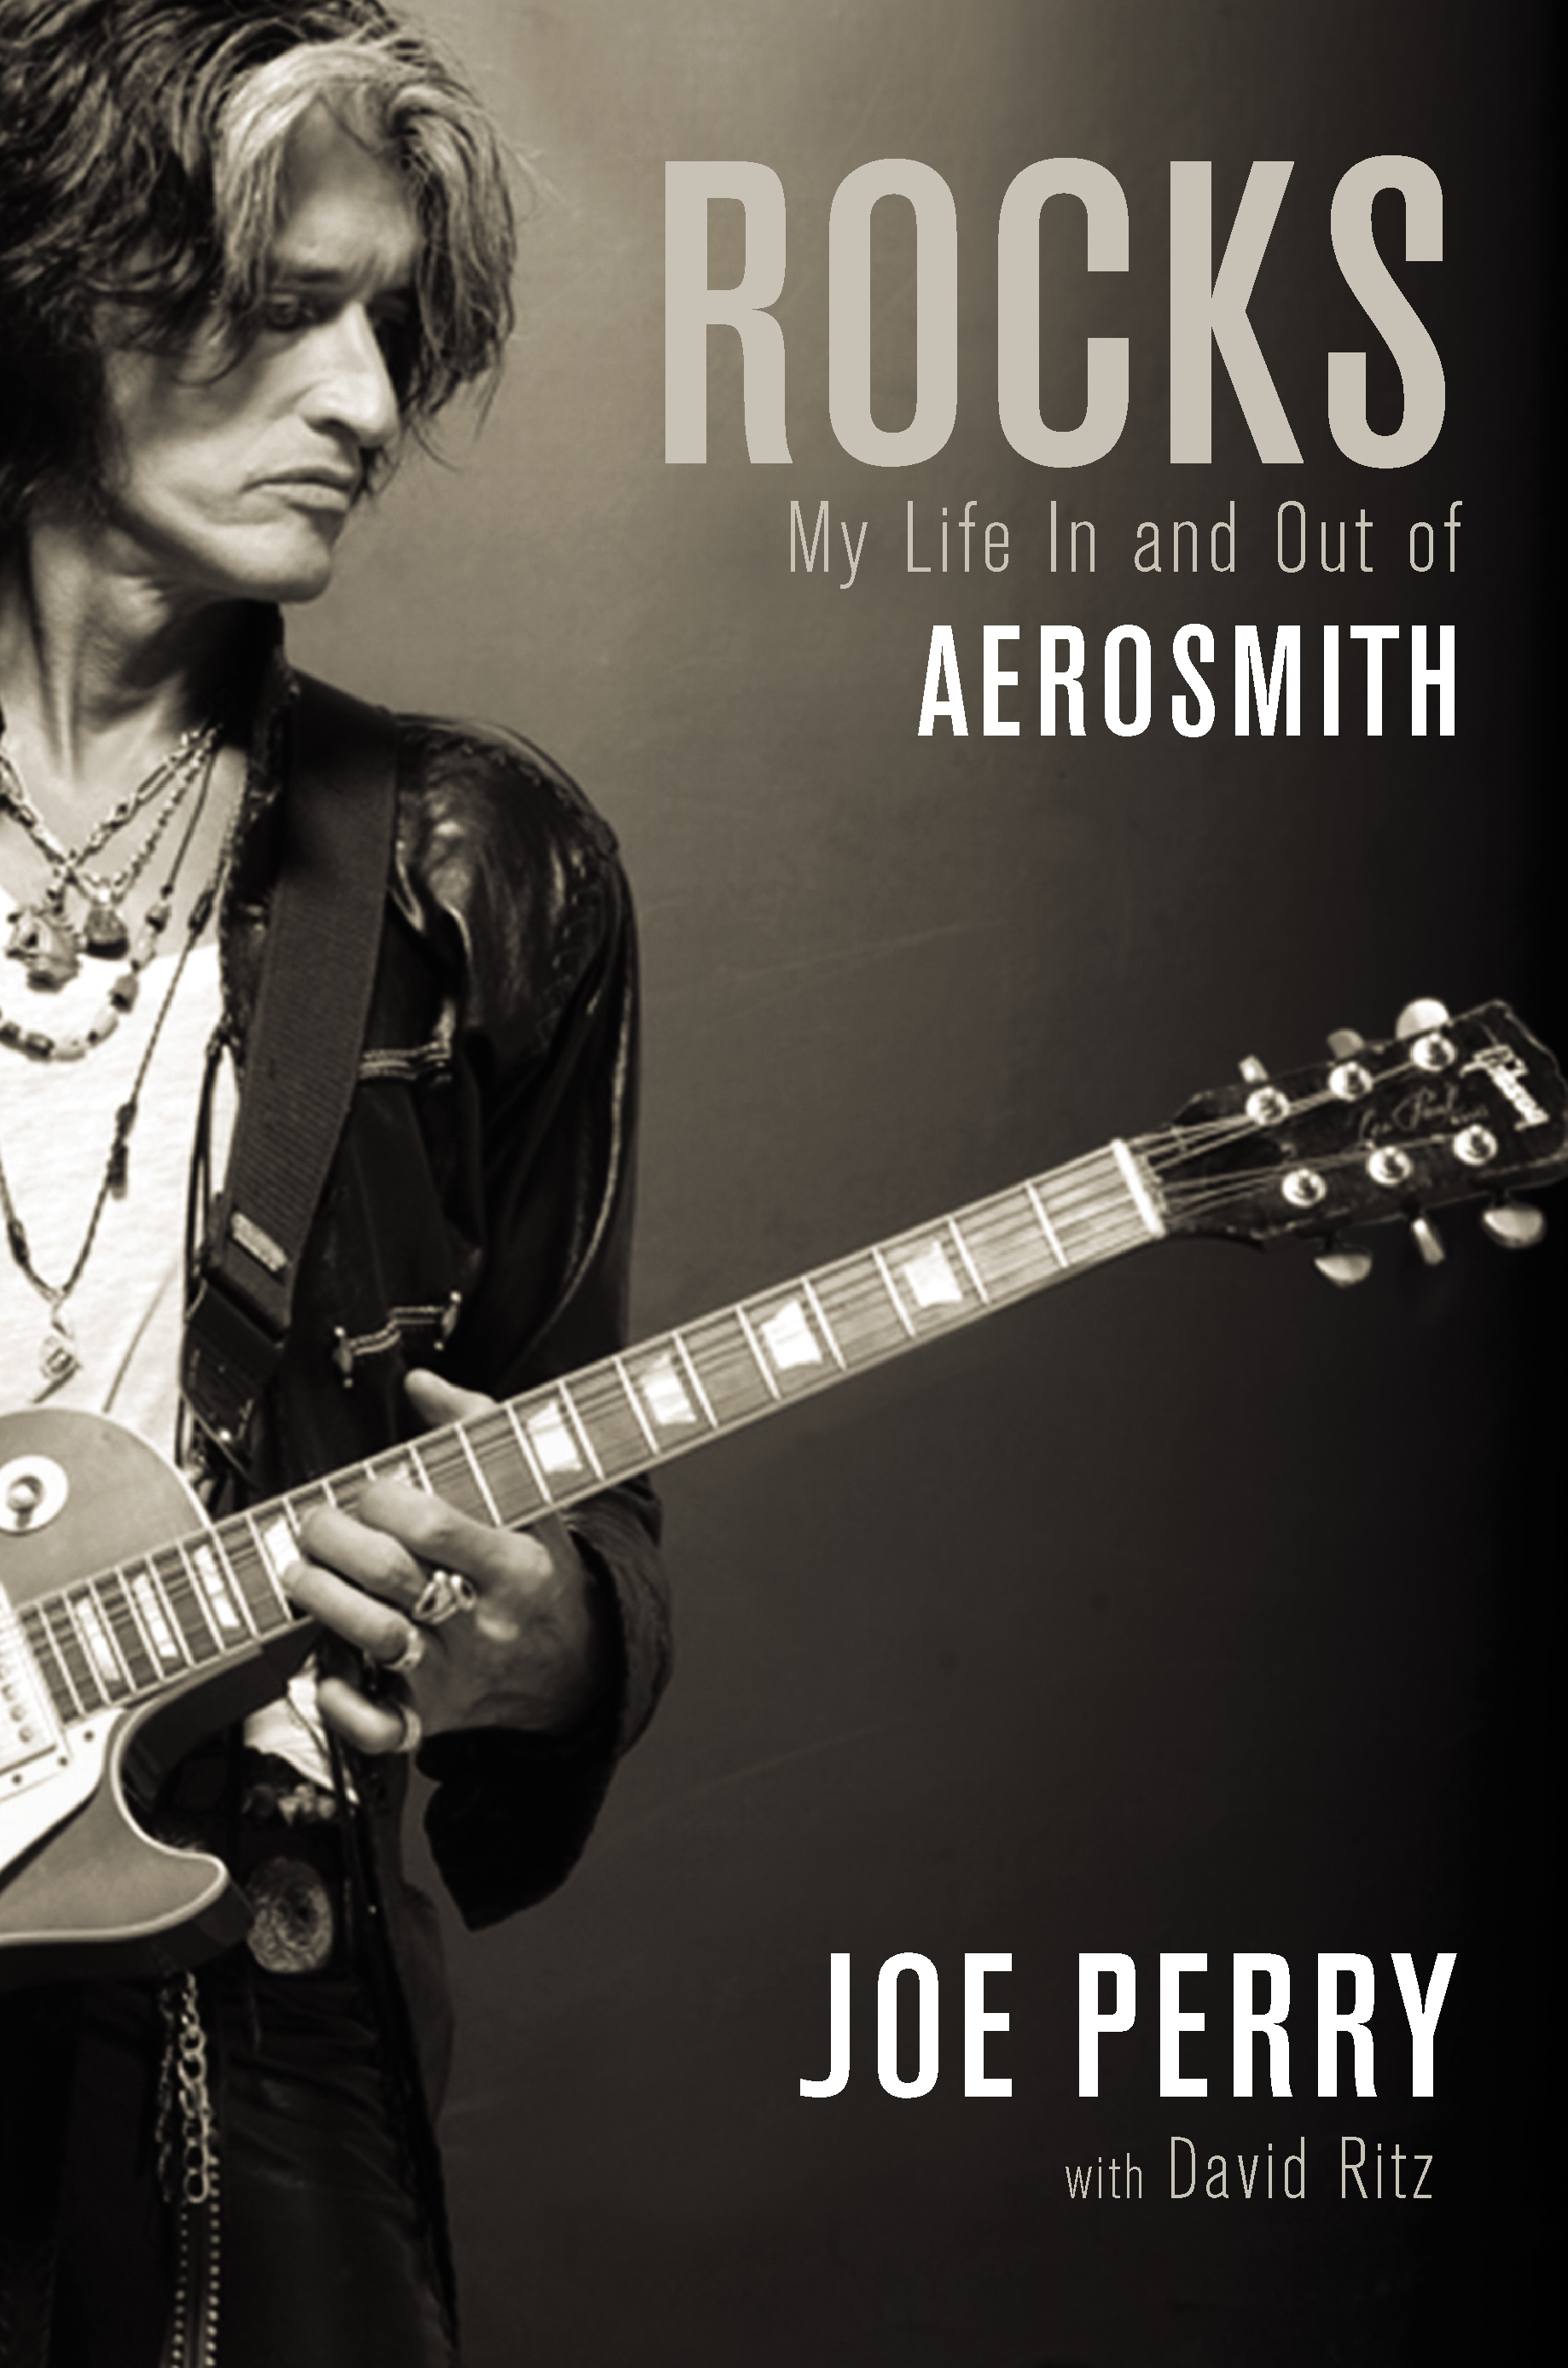 """15 Things I Learned From Joe Perry's """"Rocks"""""""